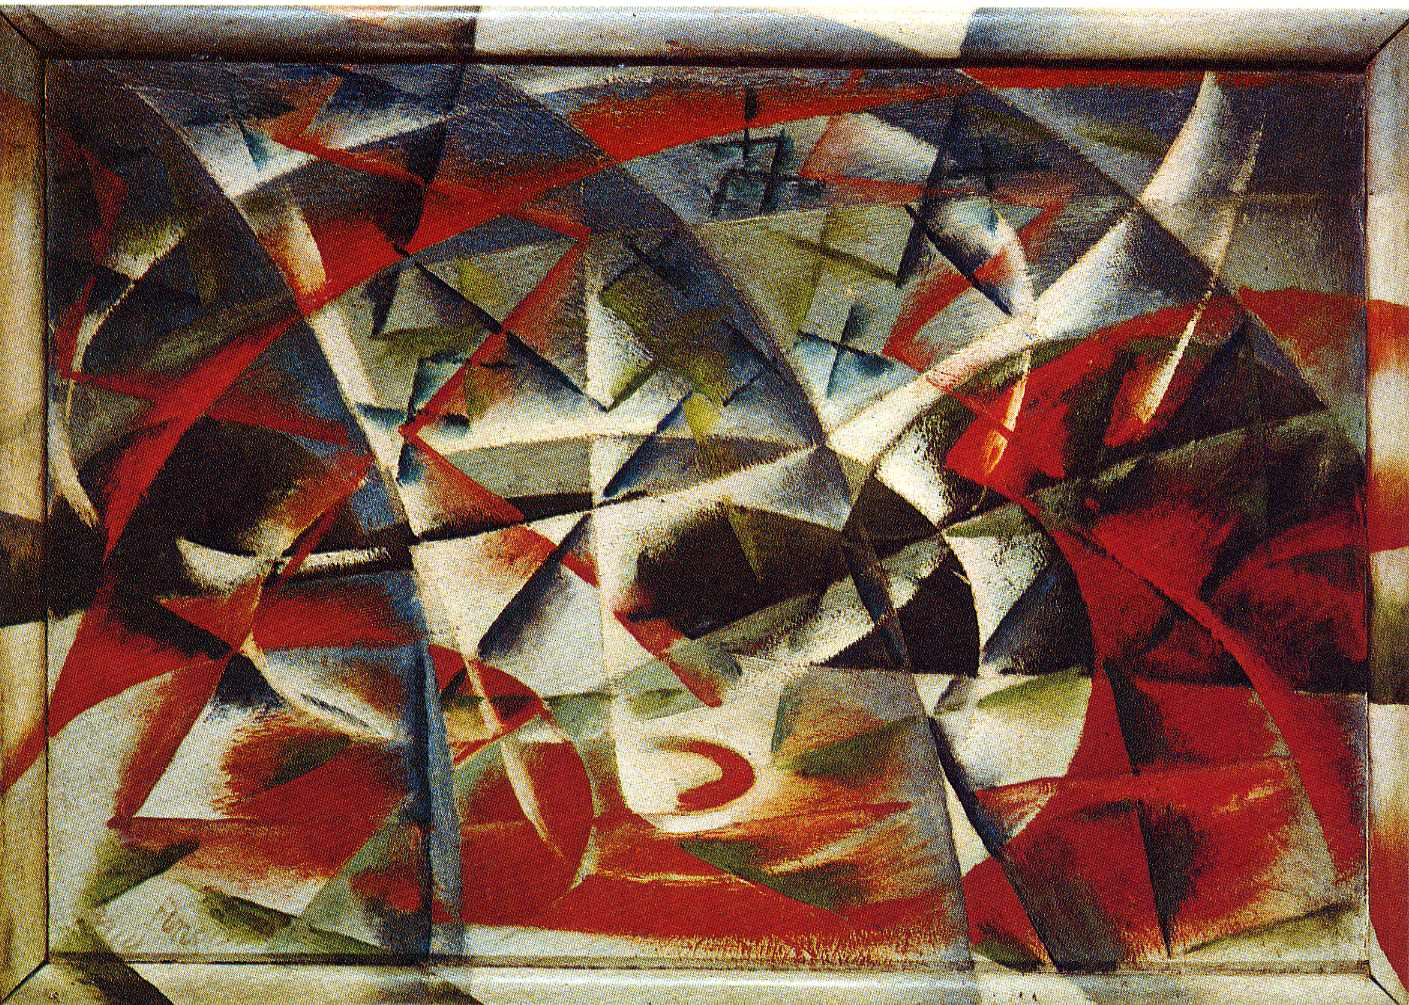 Art of the Day: Giacomo Balla, Street Light